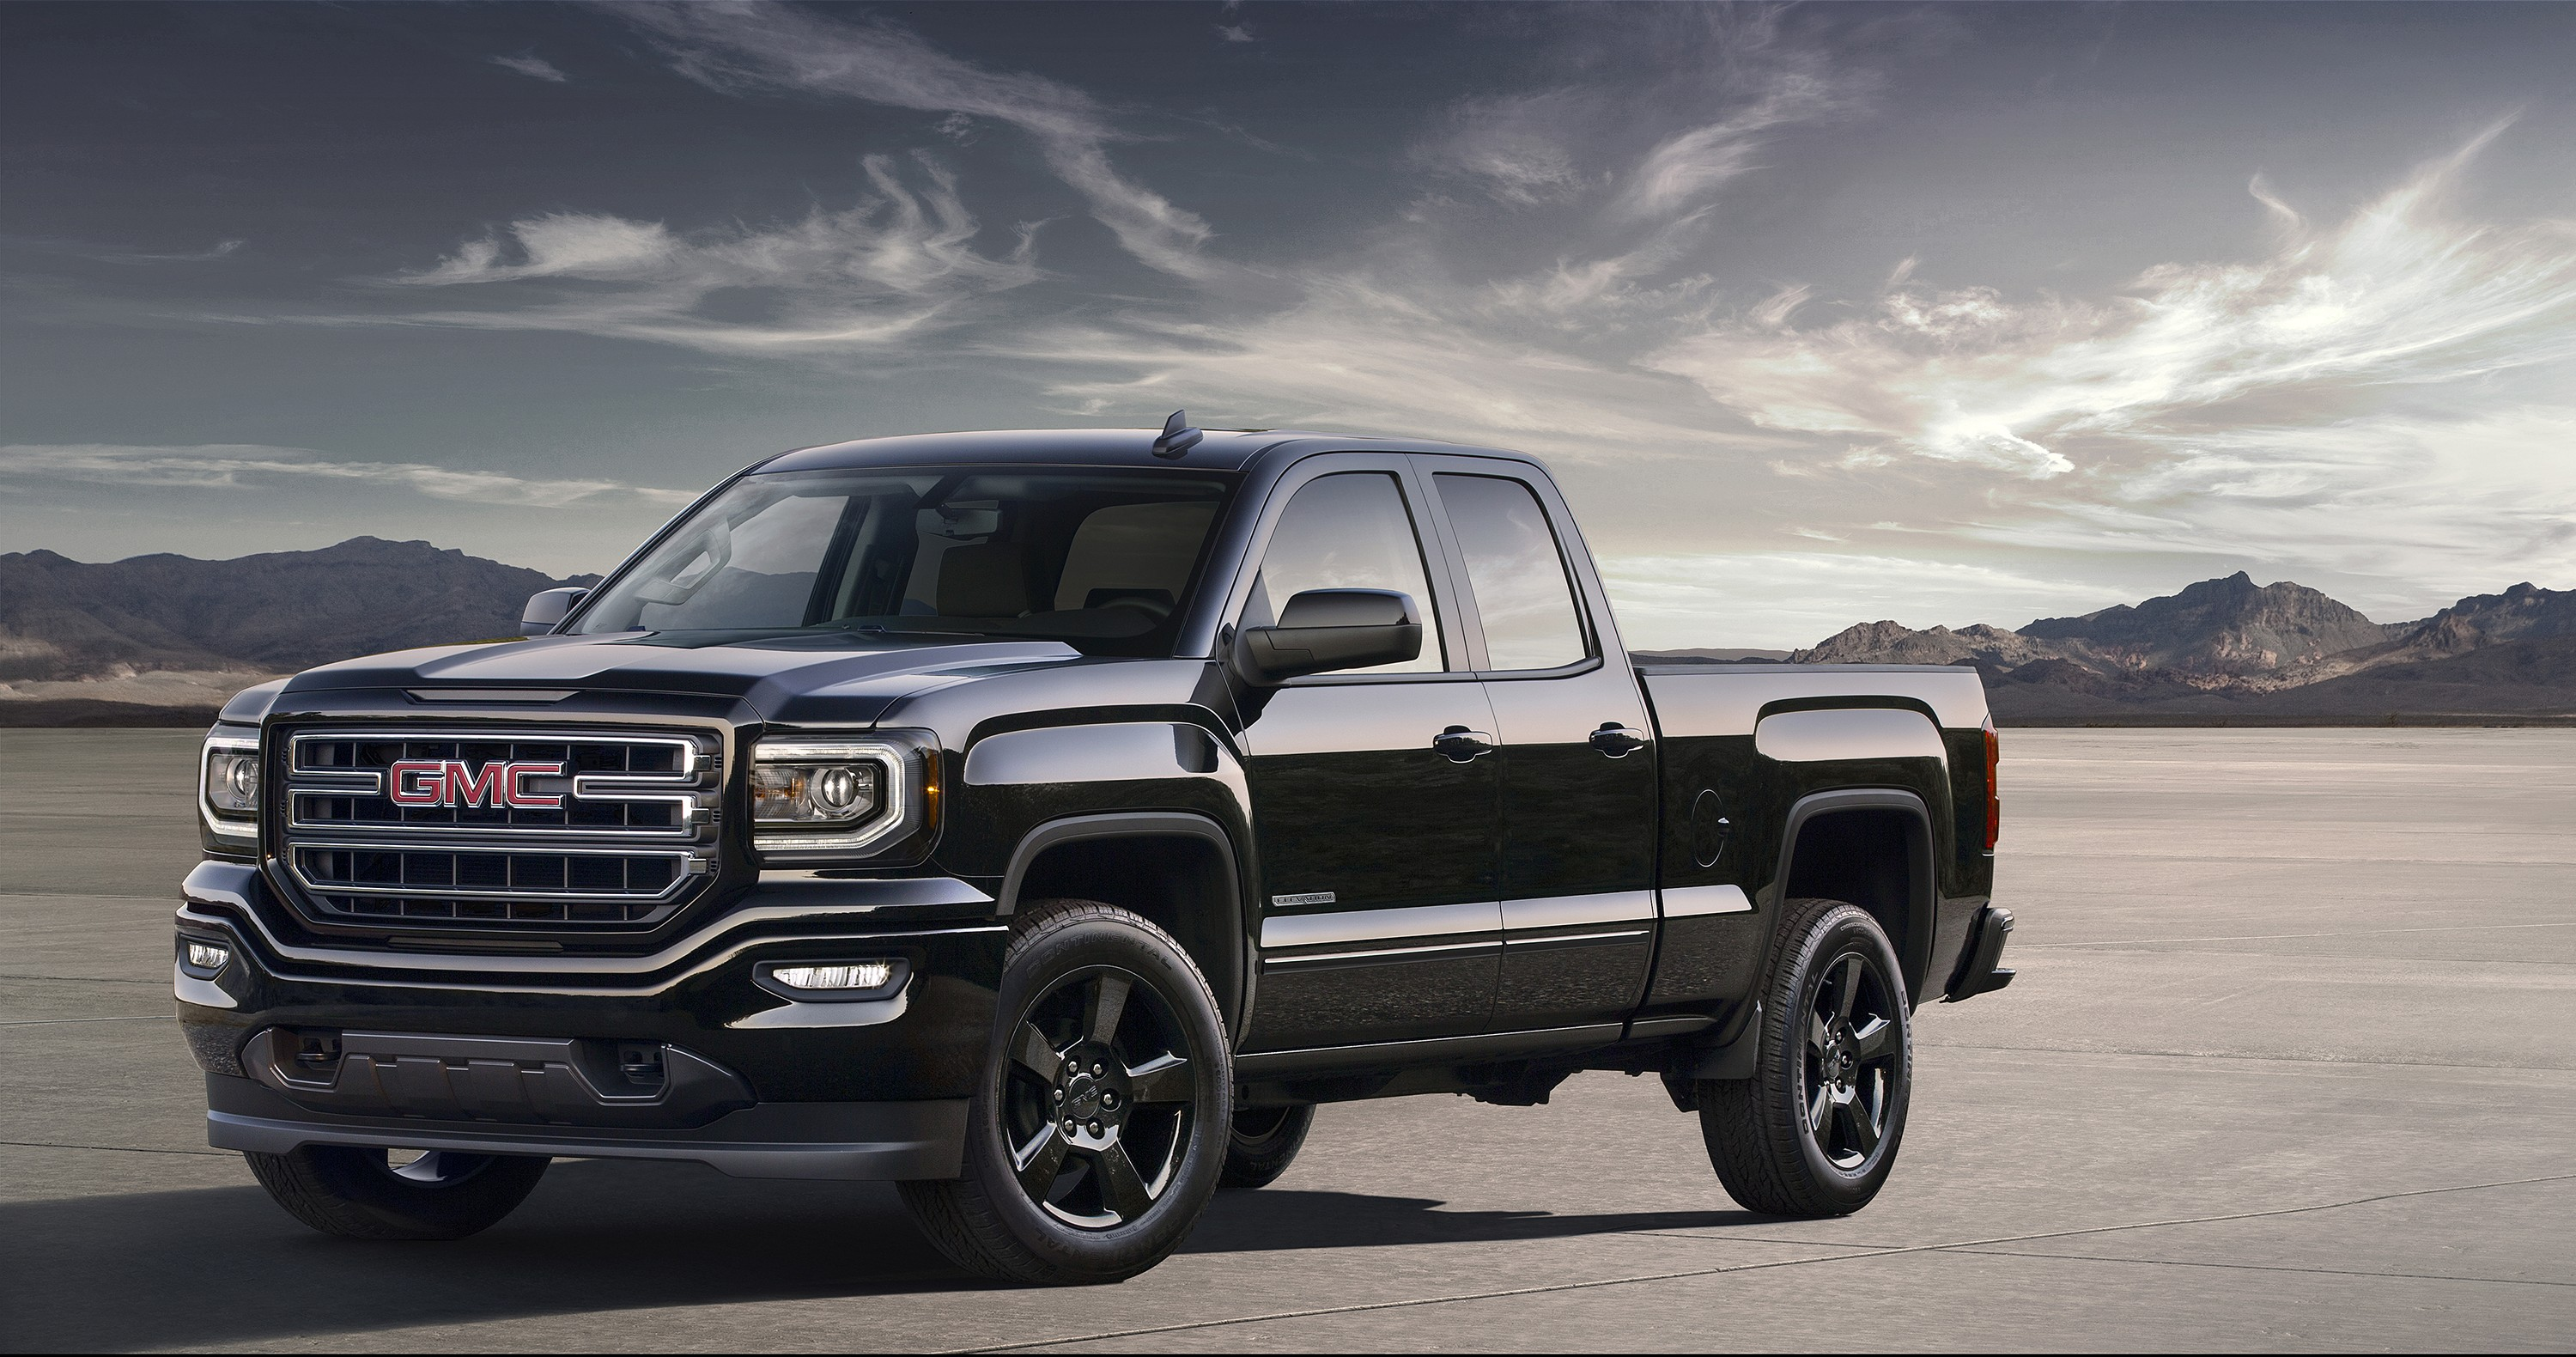 F150 Vs Sierra 2017 >> 2016 GMC Sierra Elevation Edition is an Appropriate Pickup Truck for a Sith Lord - autoevolution